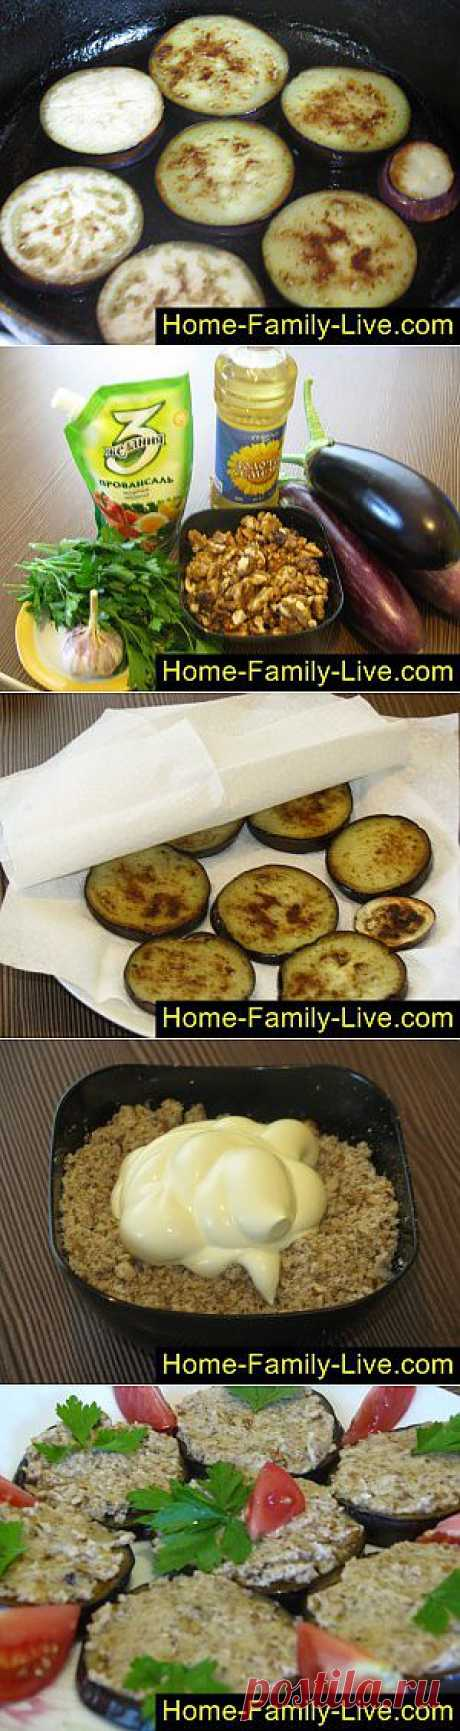 Culinary recipes Eggplants with walnuts - the step-by-step photorecipe - snack from a bakl